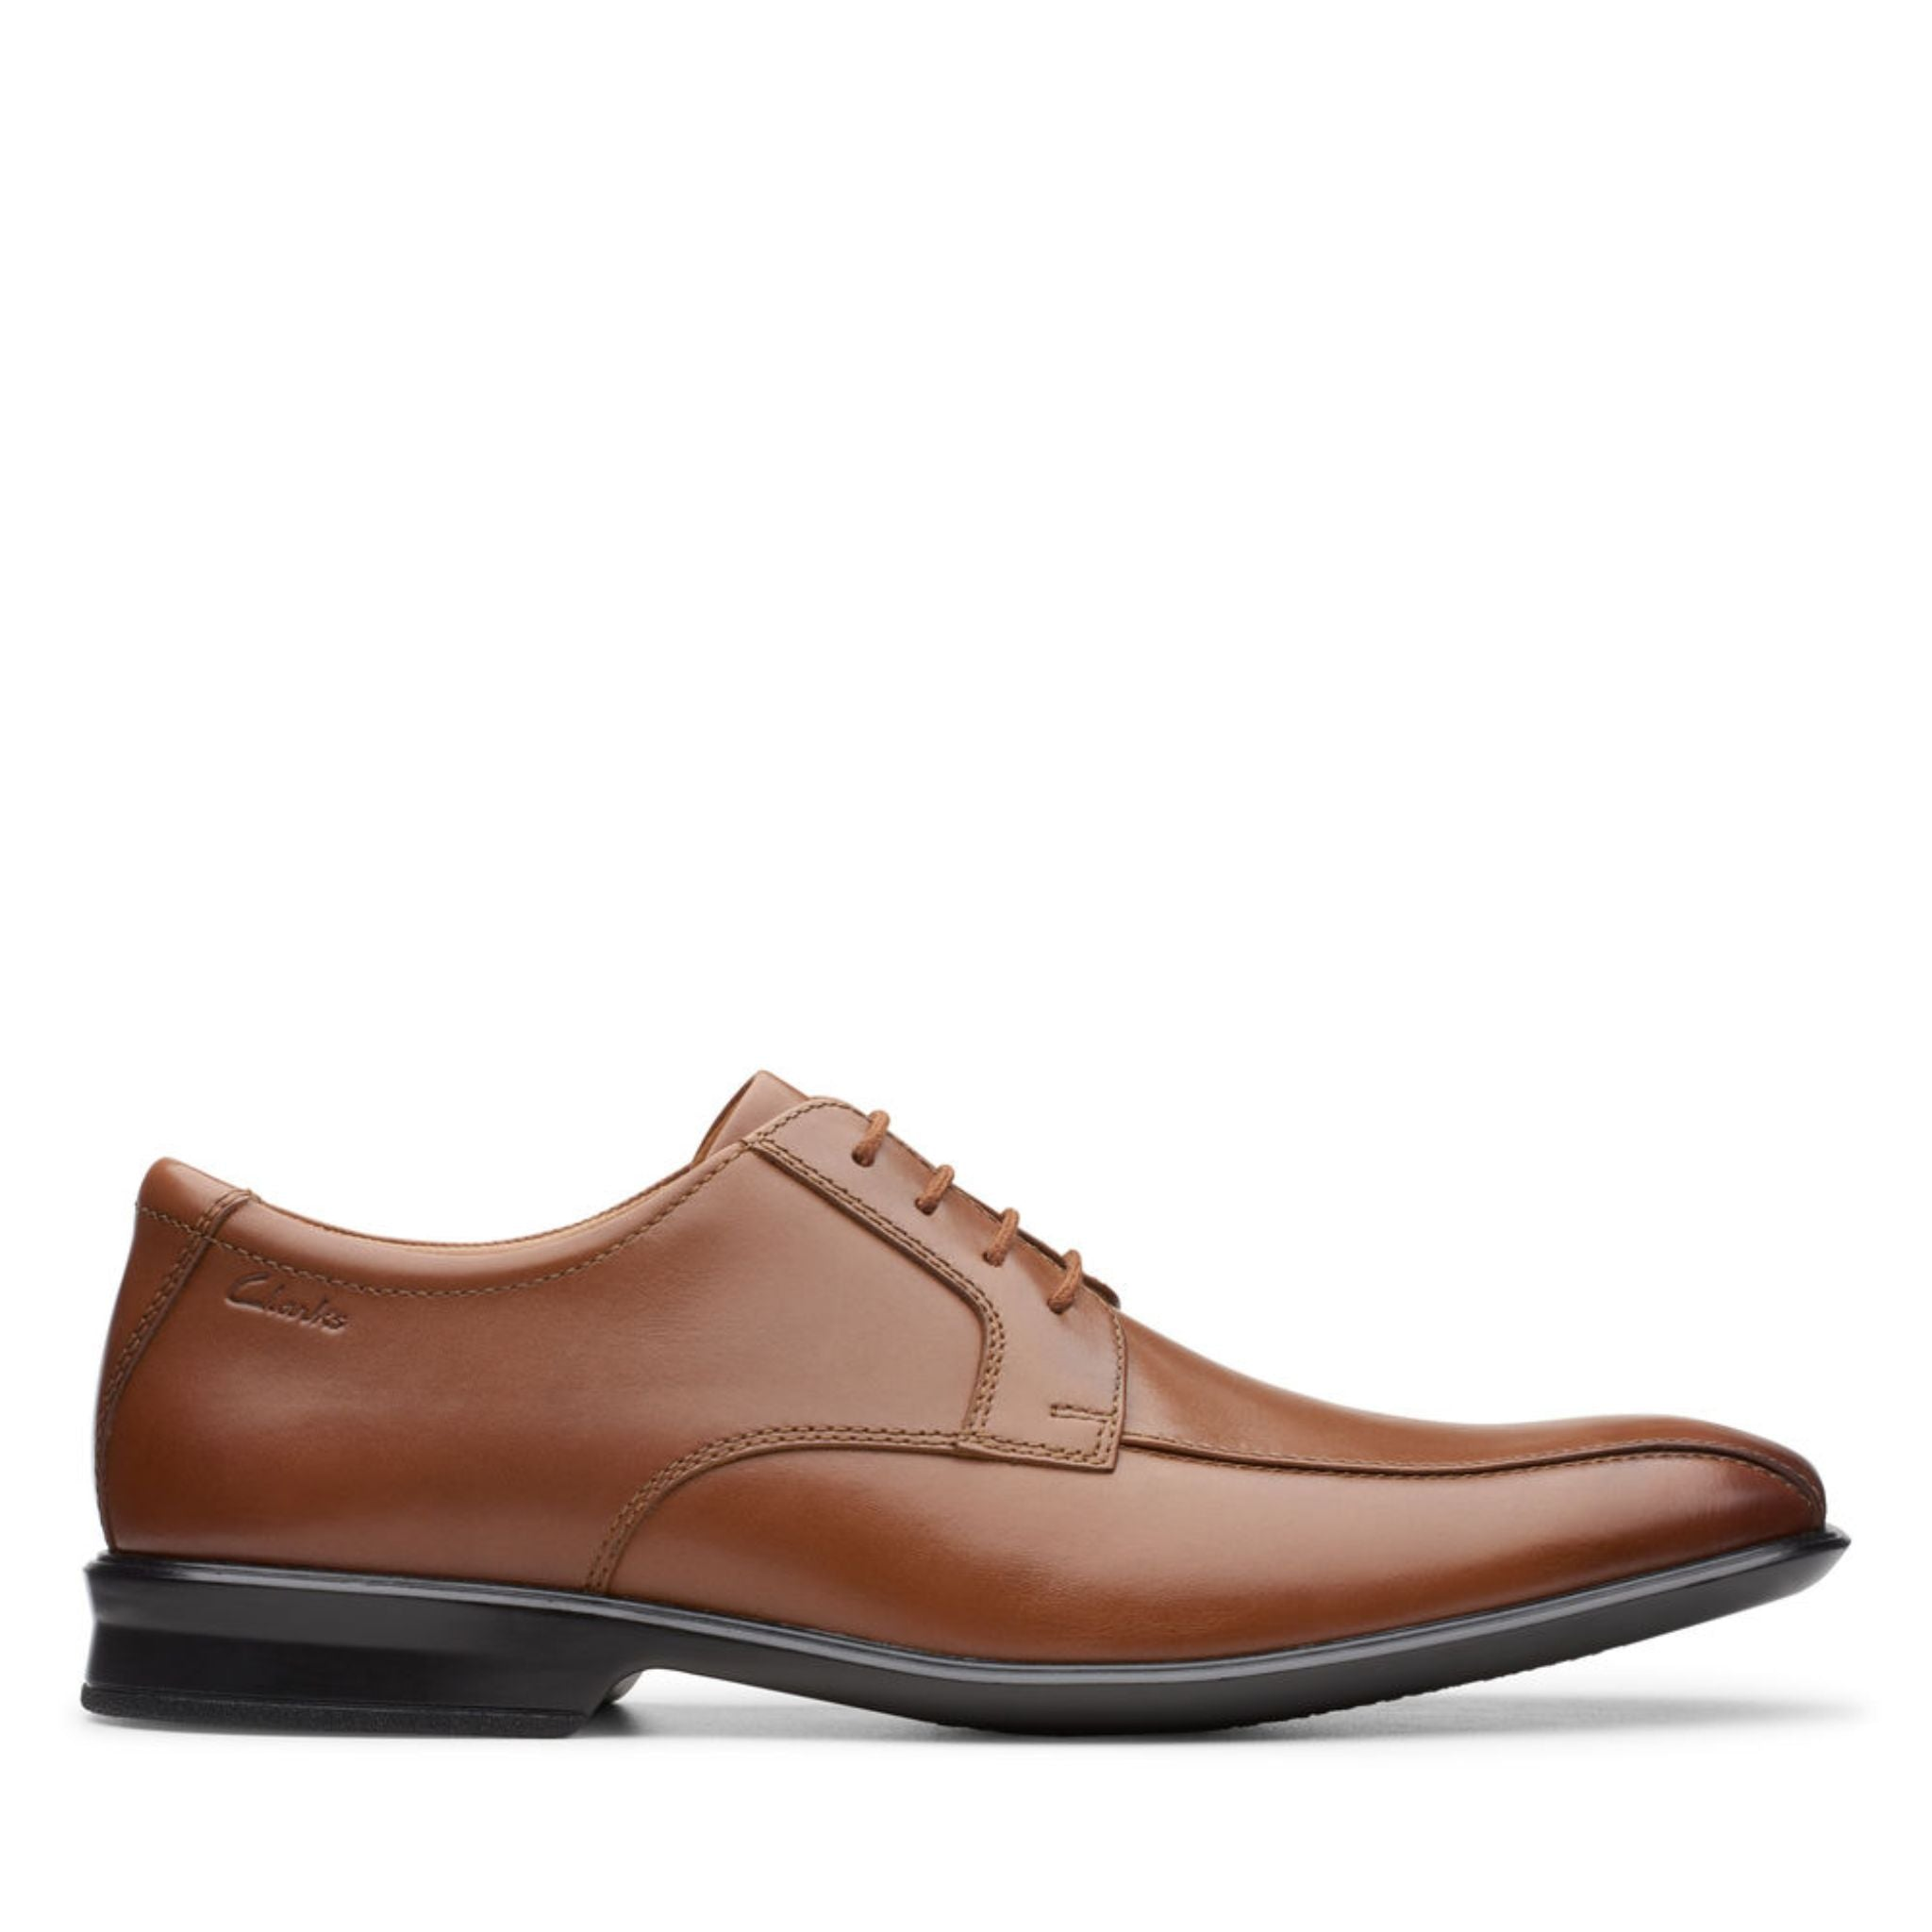 Clarks Bensley Run - Dark Tan Leather